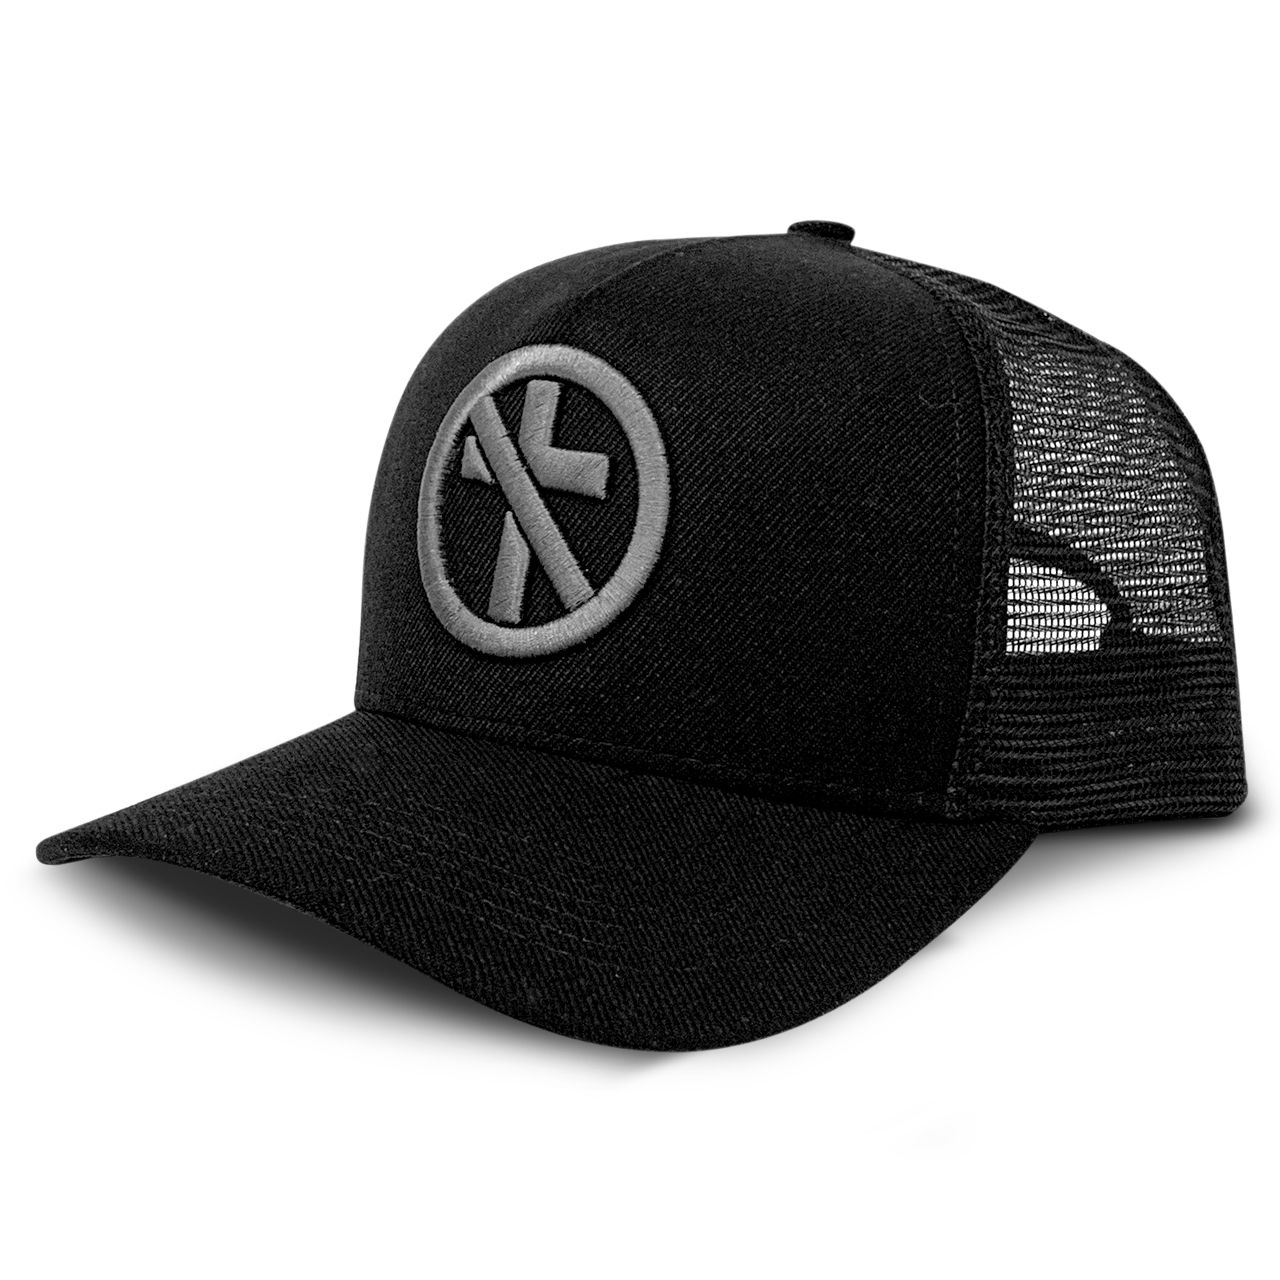 Bad Religion - Trucker Hat [Boné]